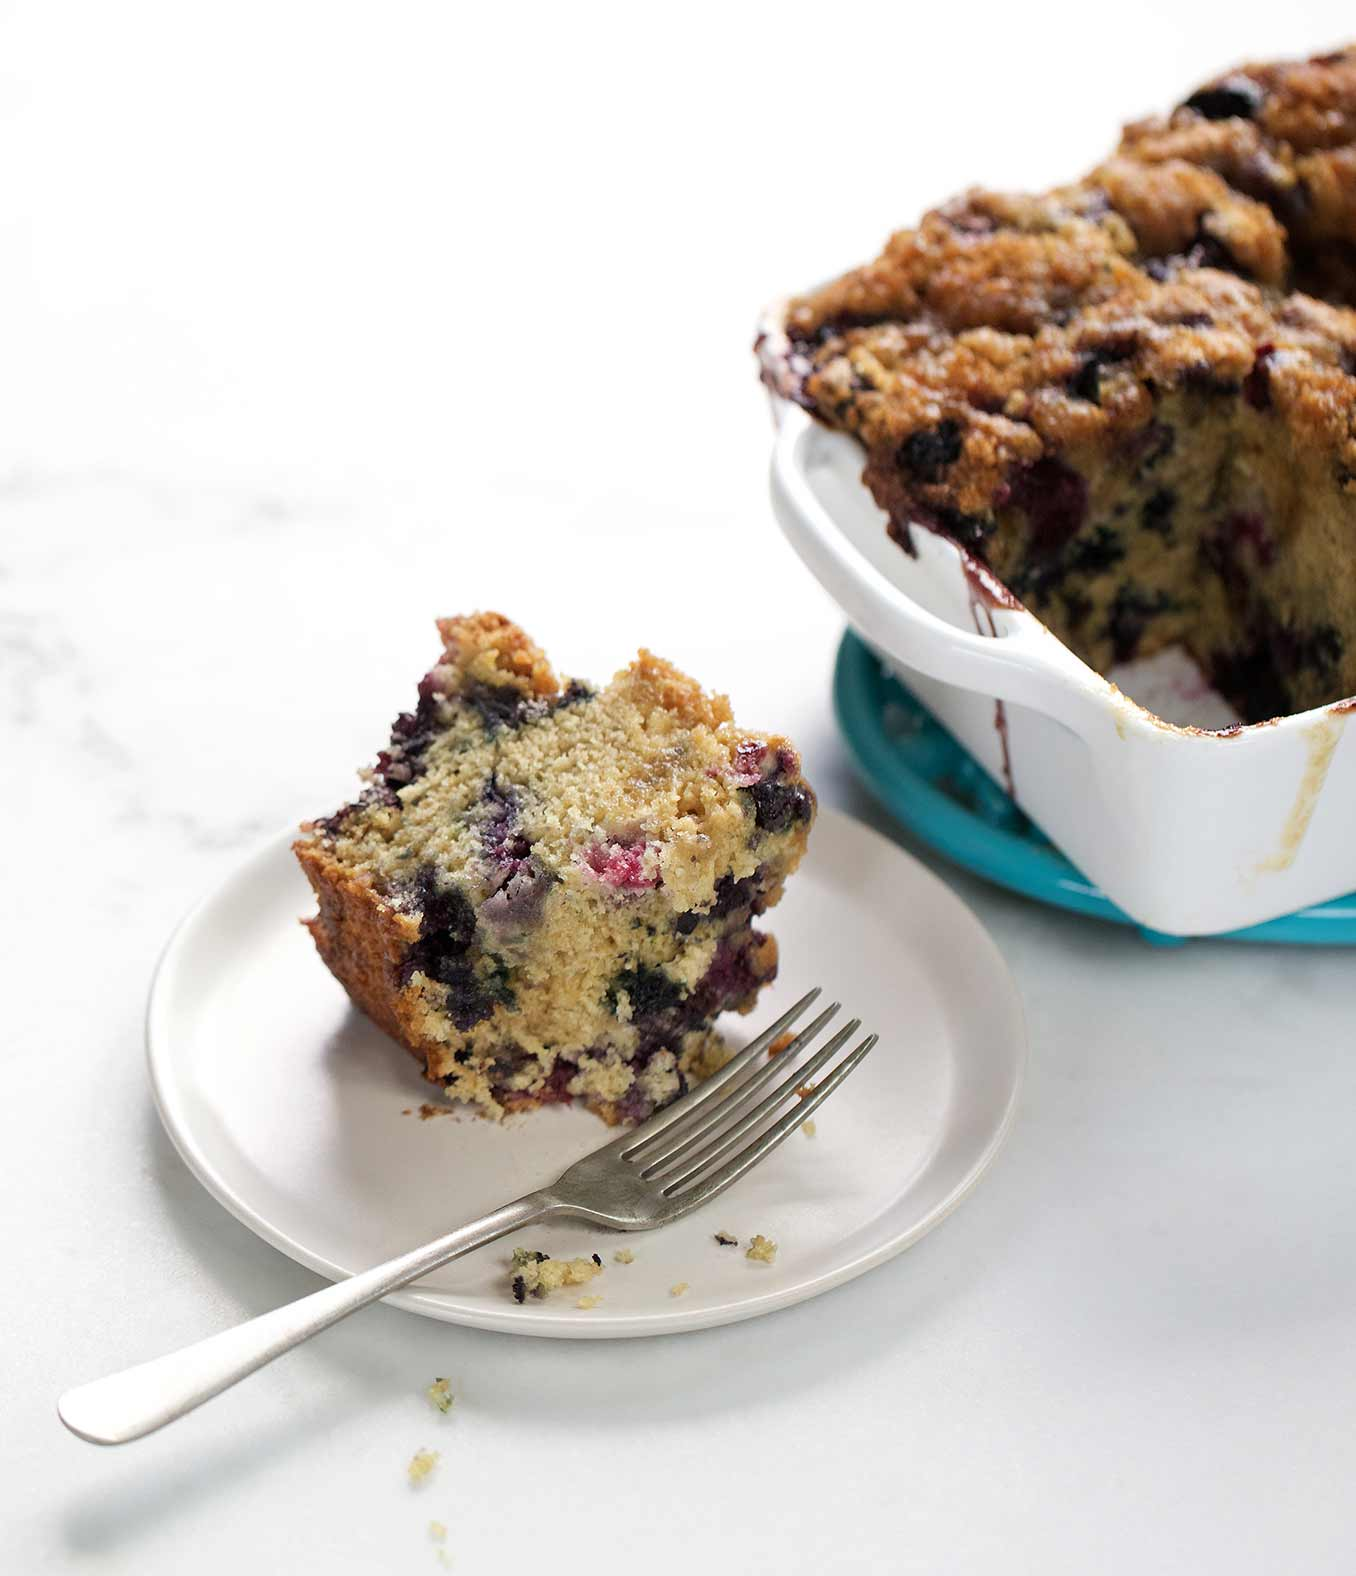 Cream-Glazed Blueberry Coffee Cake